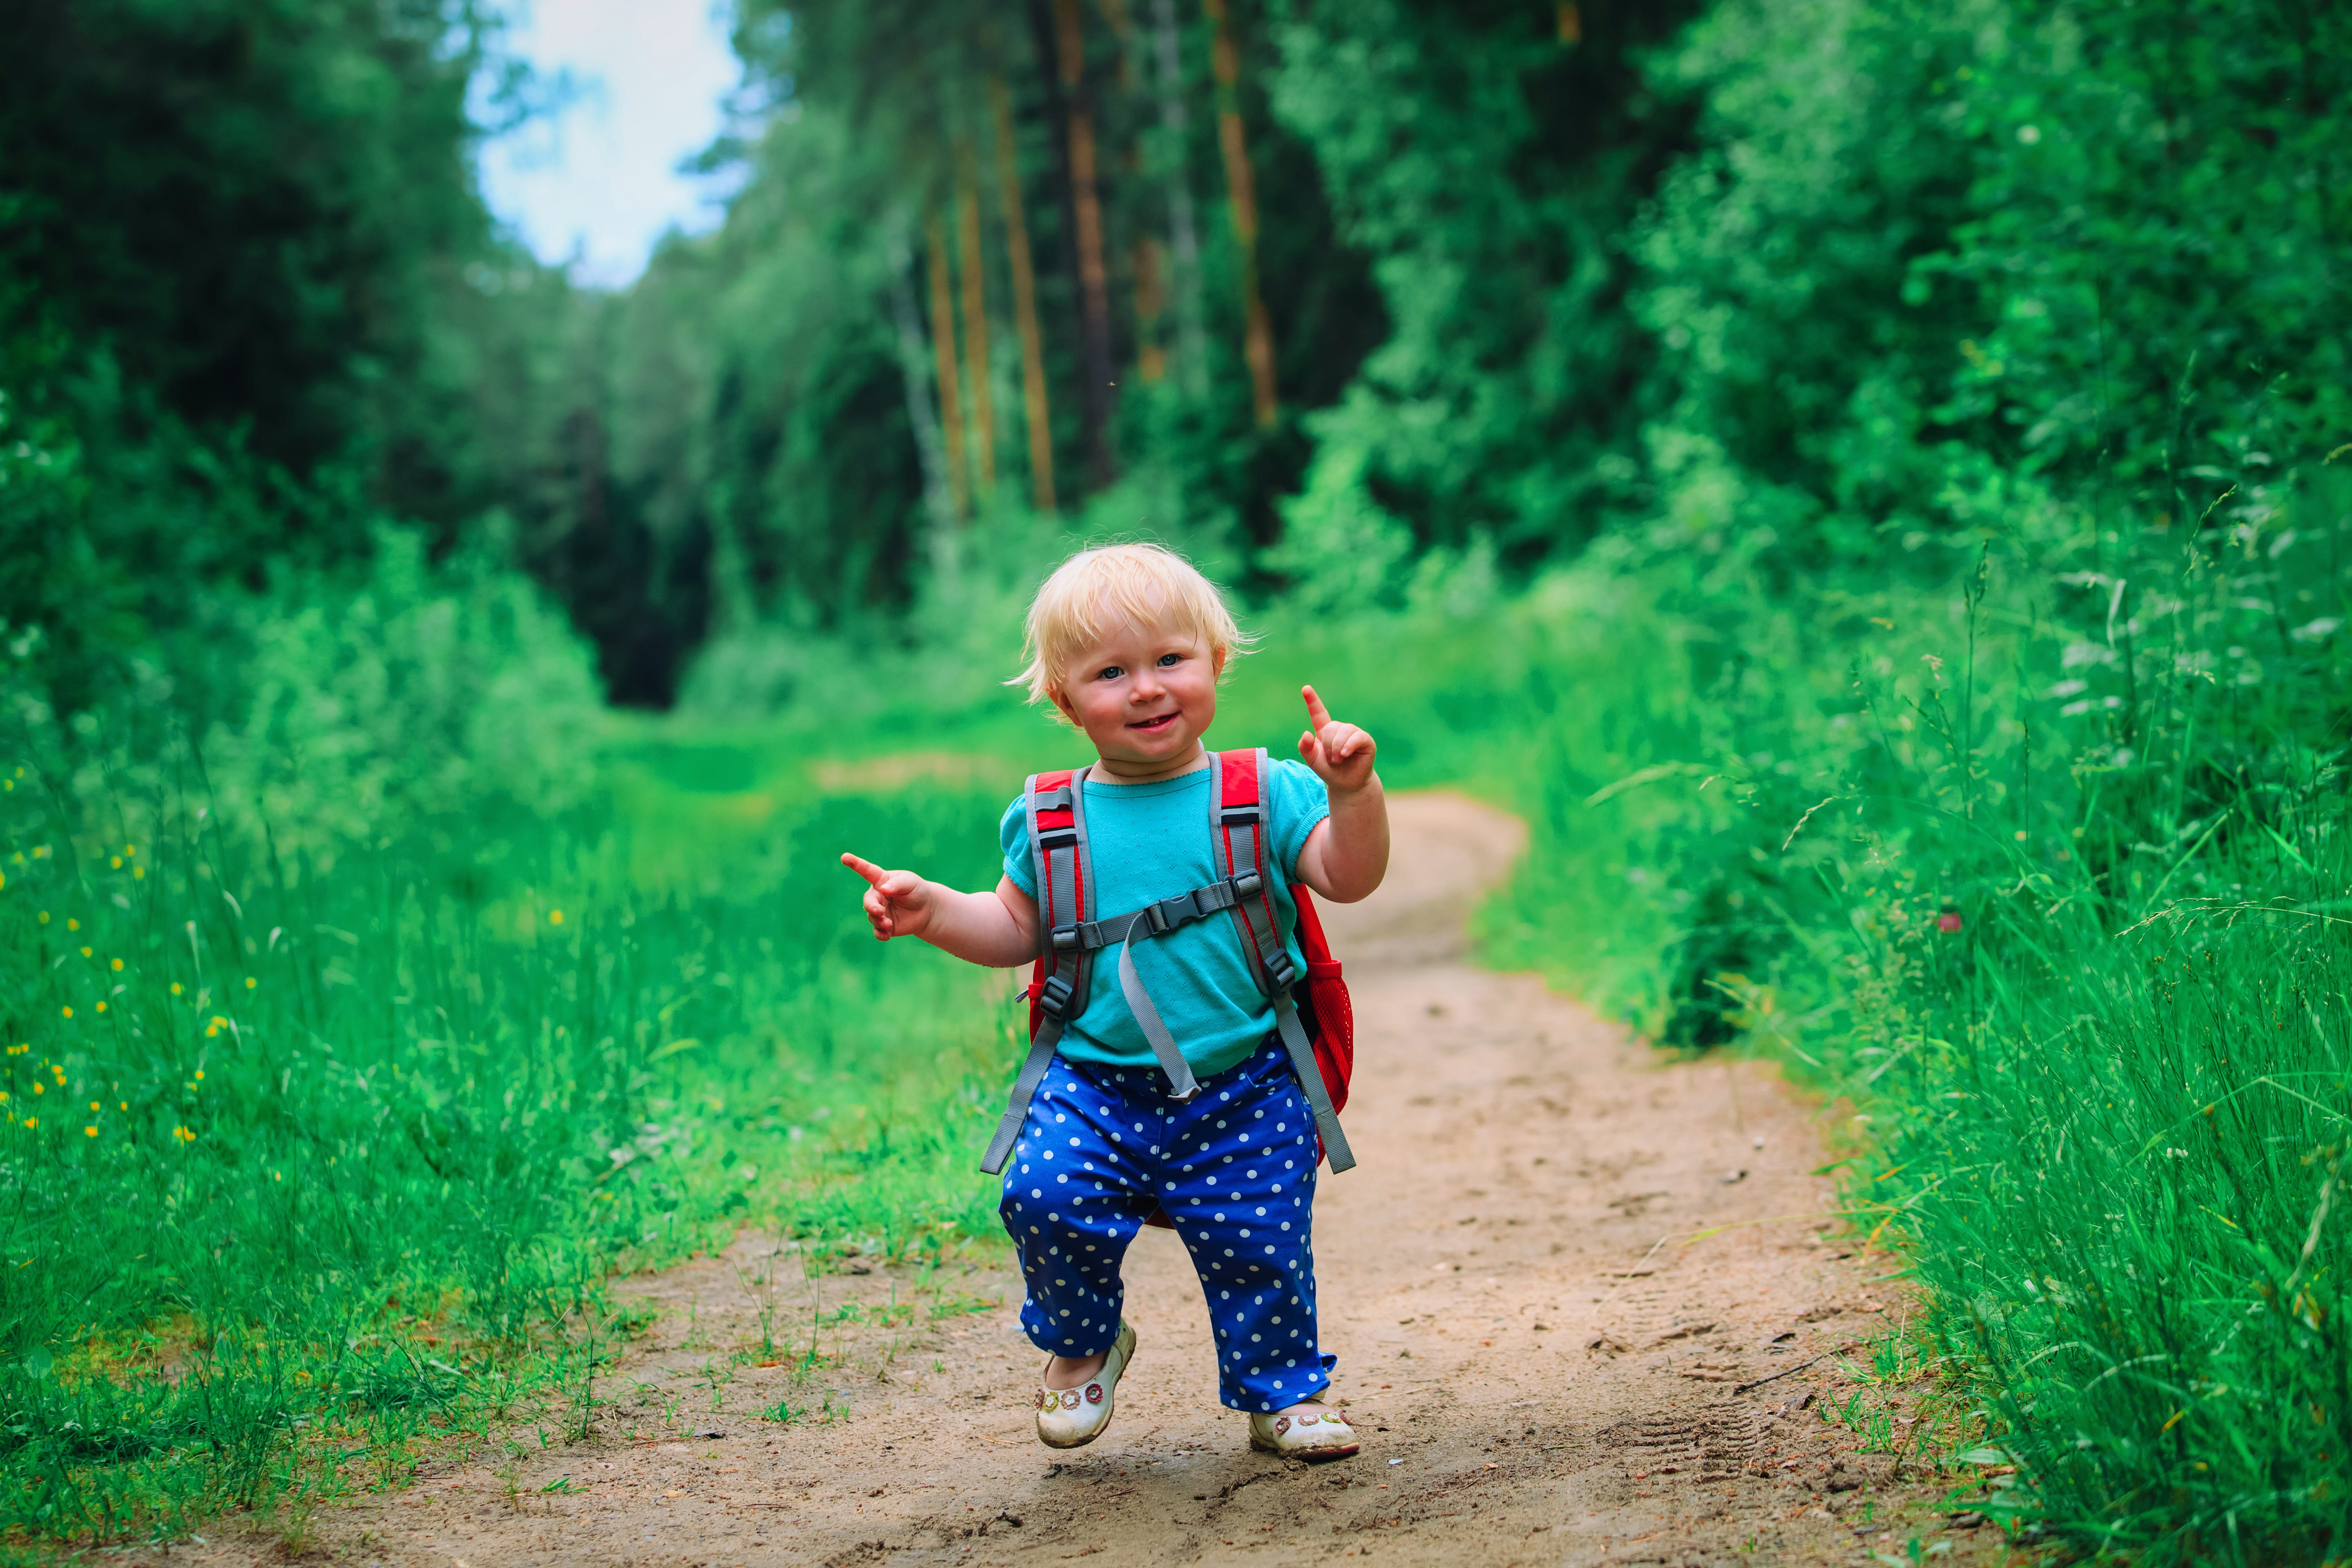 A toddler bebops down a trail with an oversized backpack on; kids outdoor activities